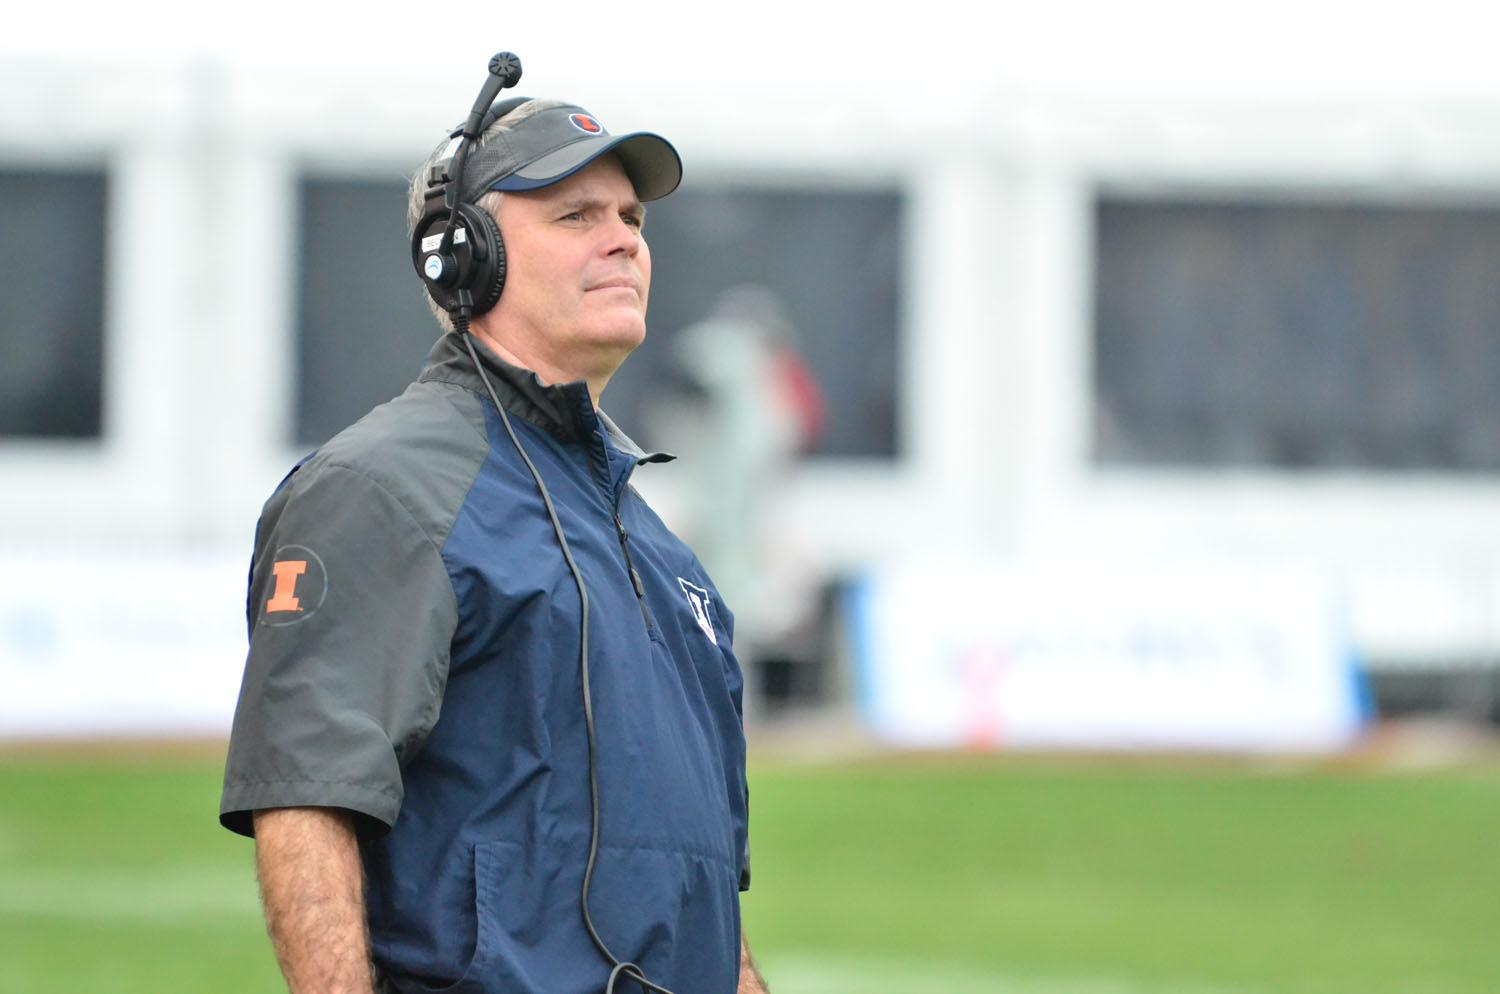 Tim Beckman is in his fourth year as Illini football head coach. Last season, he led the Illini to their first bowl game since 2011. The Illini finished the season with a 6-7 overall record.